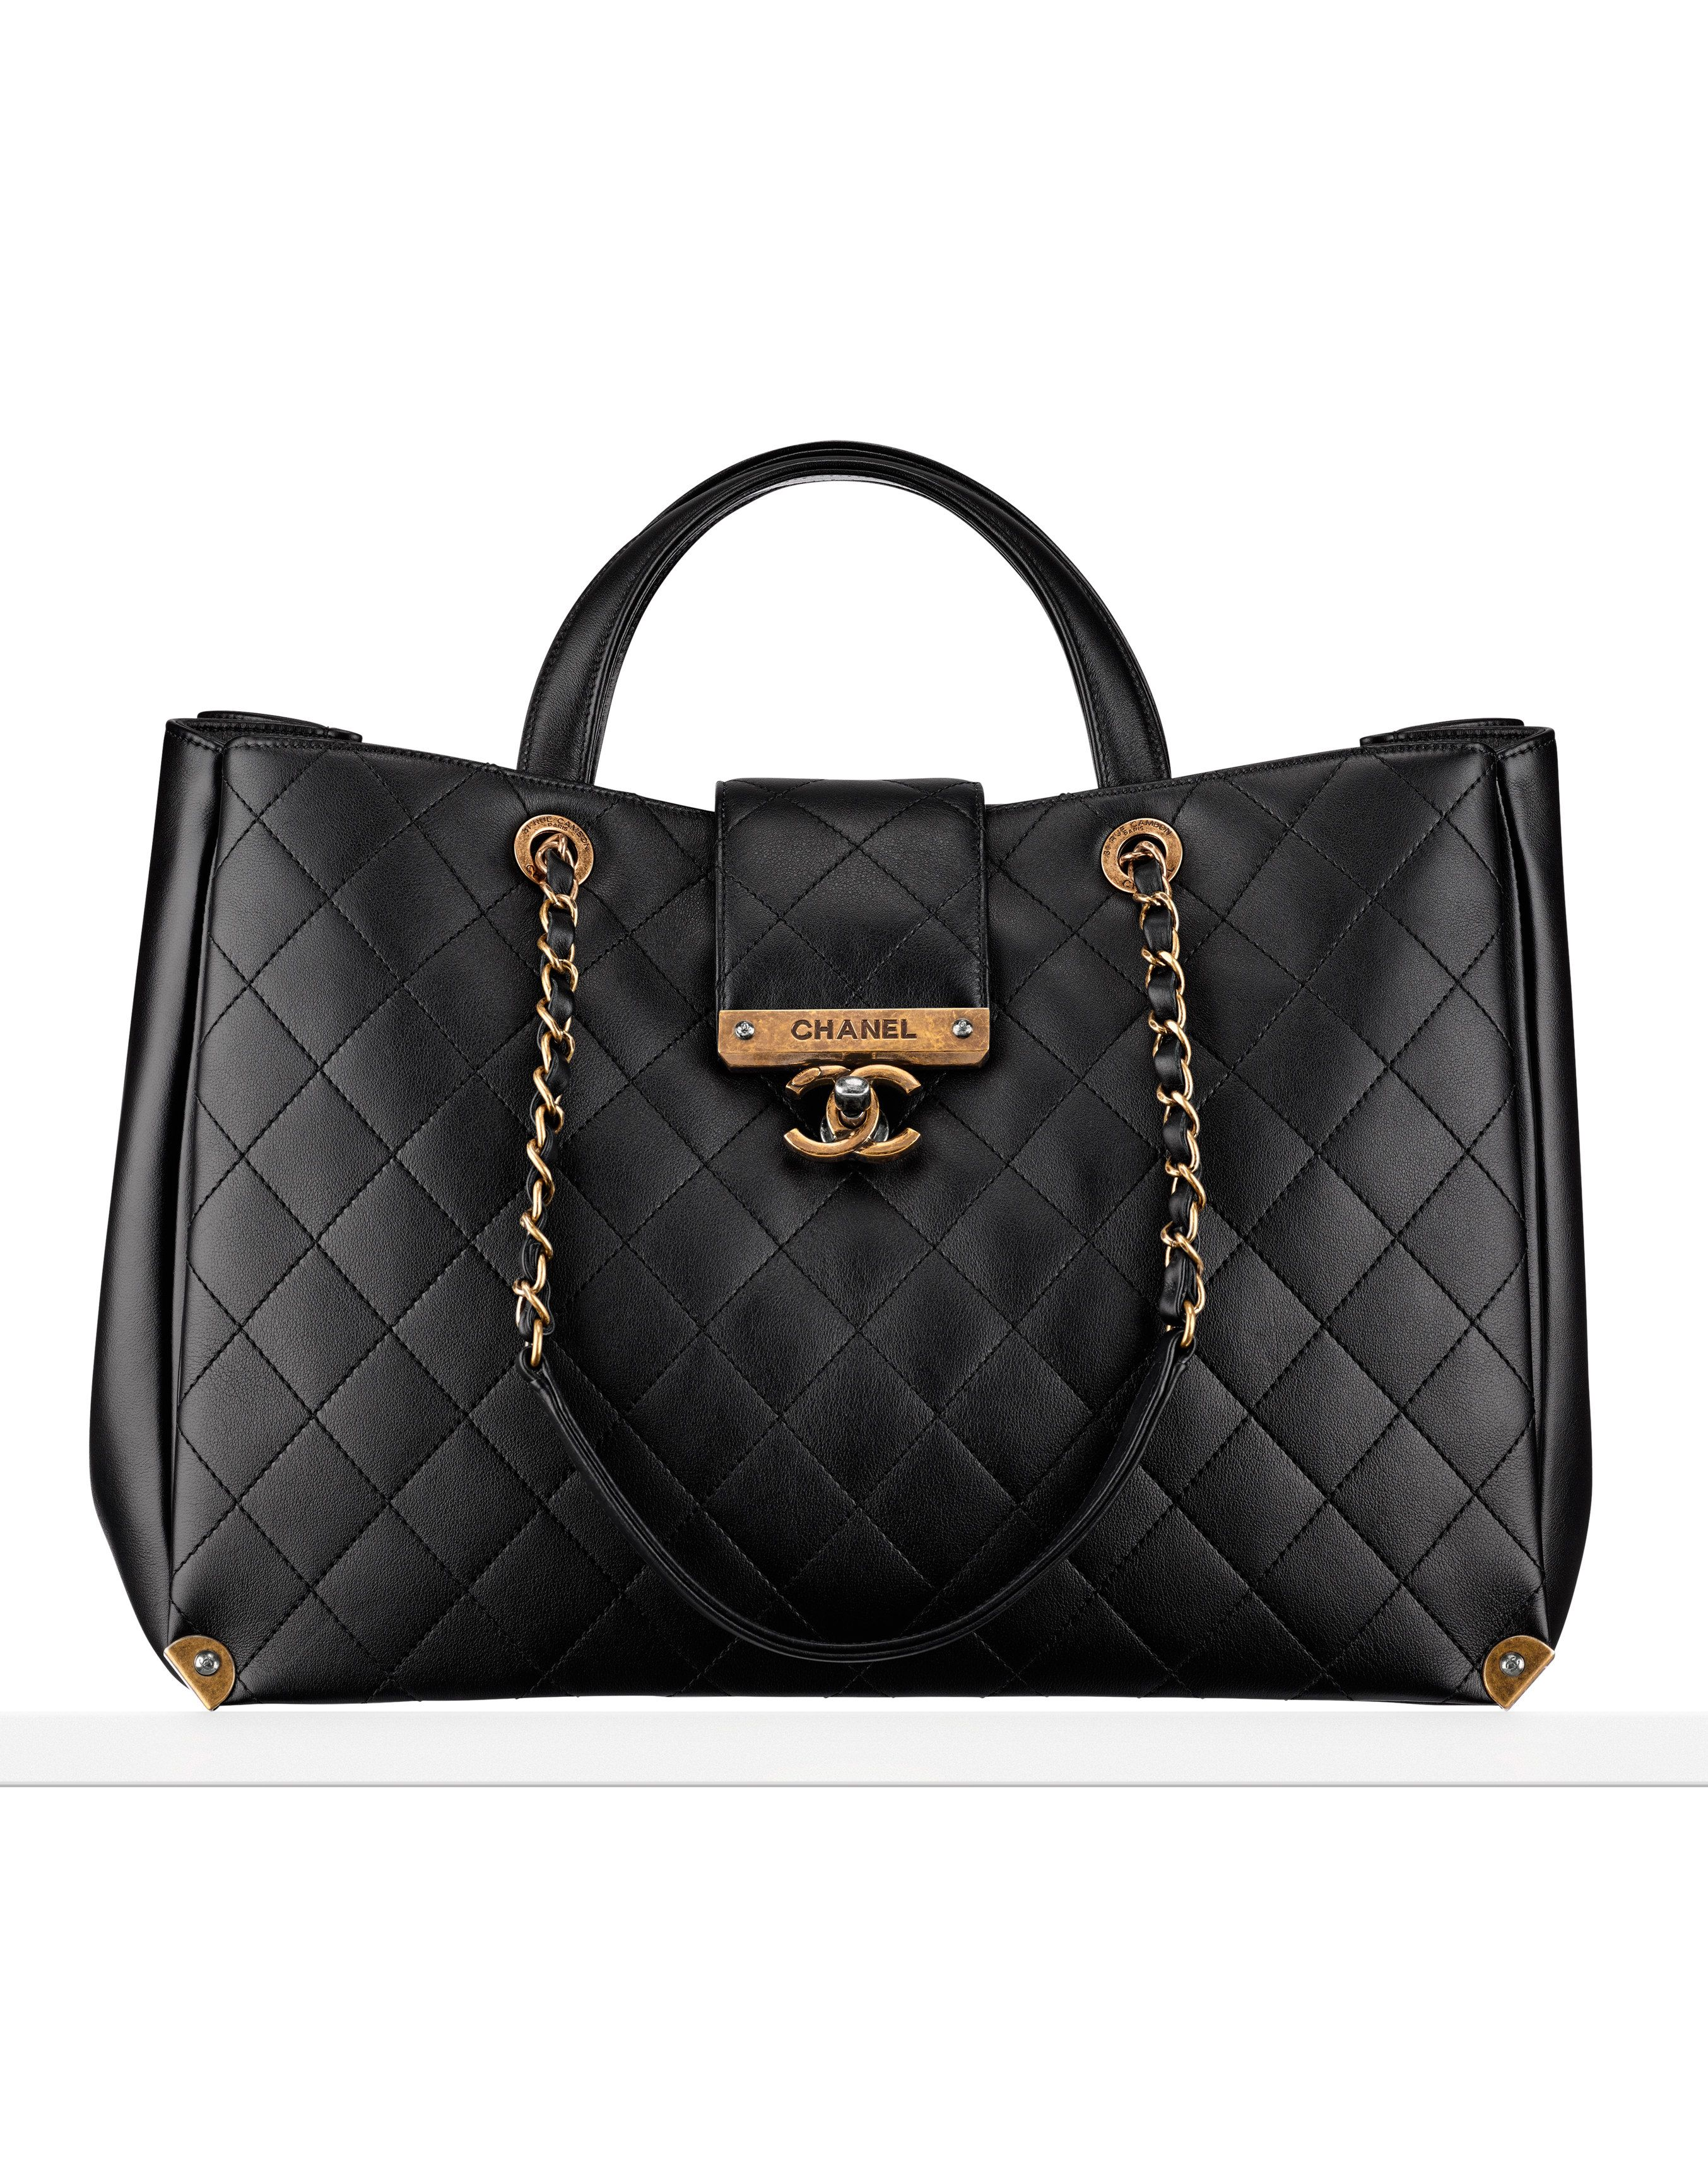 The latest Handbags collections on the CHANEL official website ...